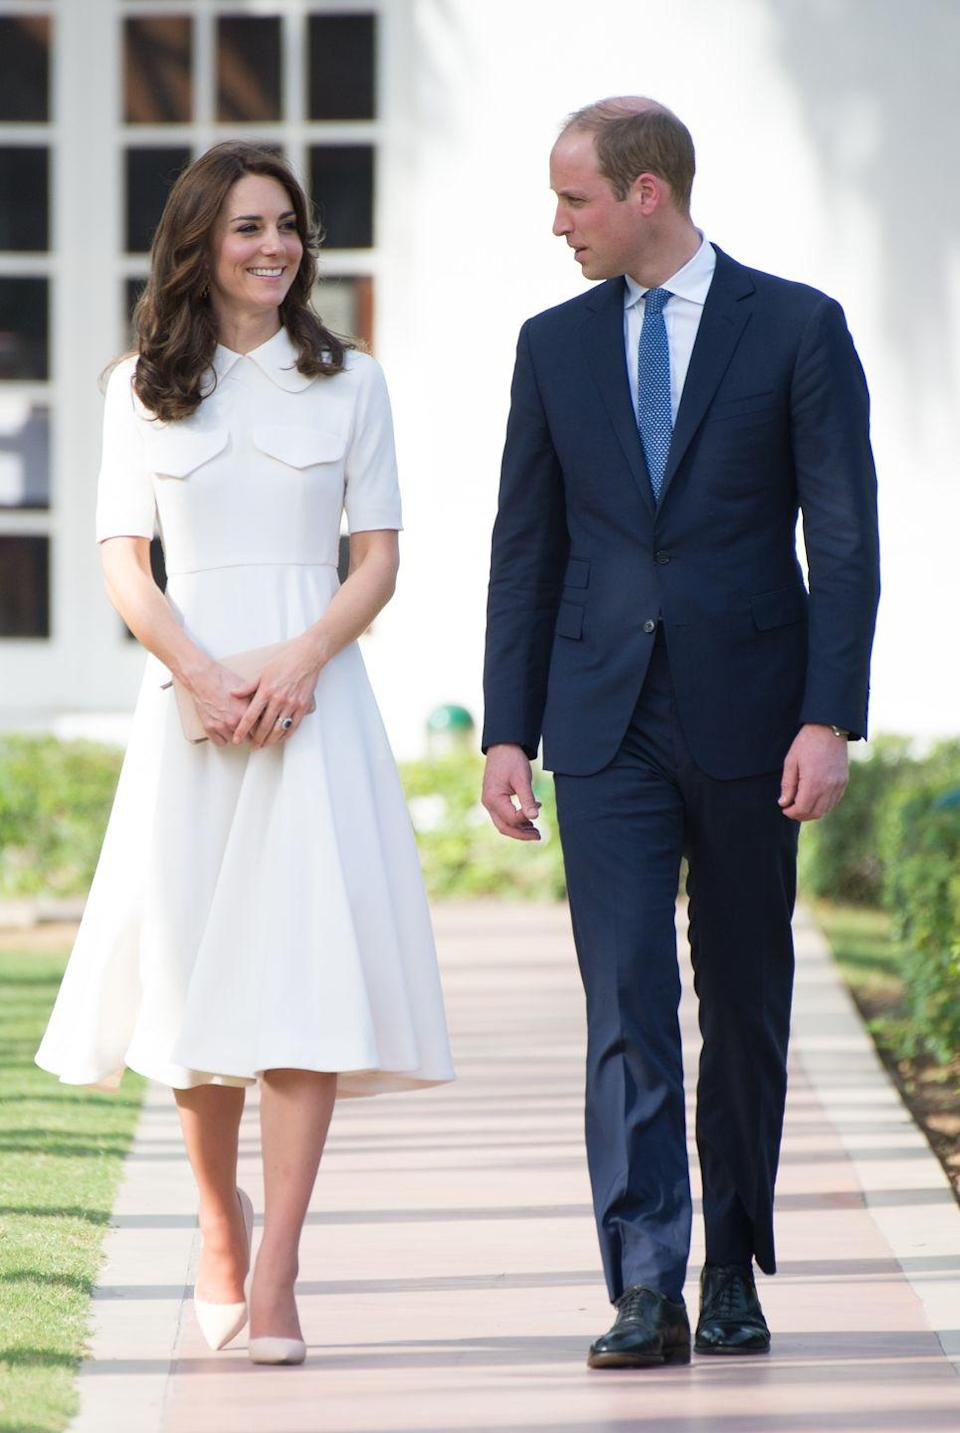 """<p>Kate wears a white button up A-line dress by <a href=""""http://www.emiliawickstead.com/"""" rel=""""nofollow noopener"""" target=""""_blank"""" data-ylk=""""slk:Emilia Wickstead"""" class=""""link rapid-noclick-resp"""">Emilia Wickstead</a> during a visit to the Mahatma Gandhi museum in New Delhi. </p>"""